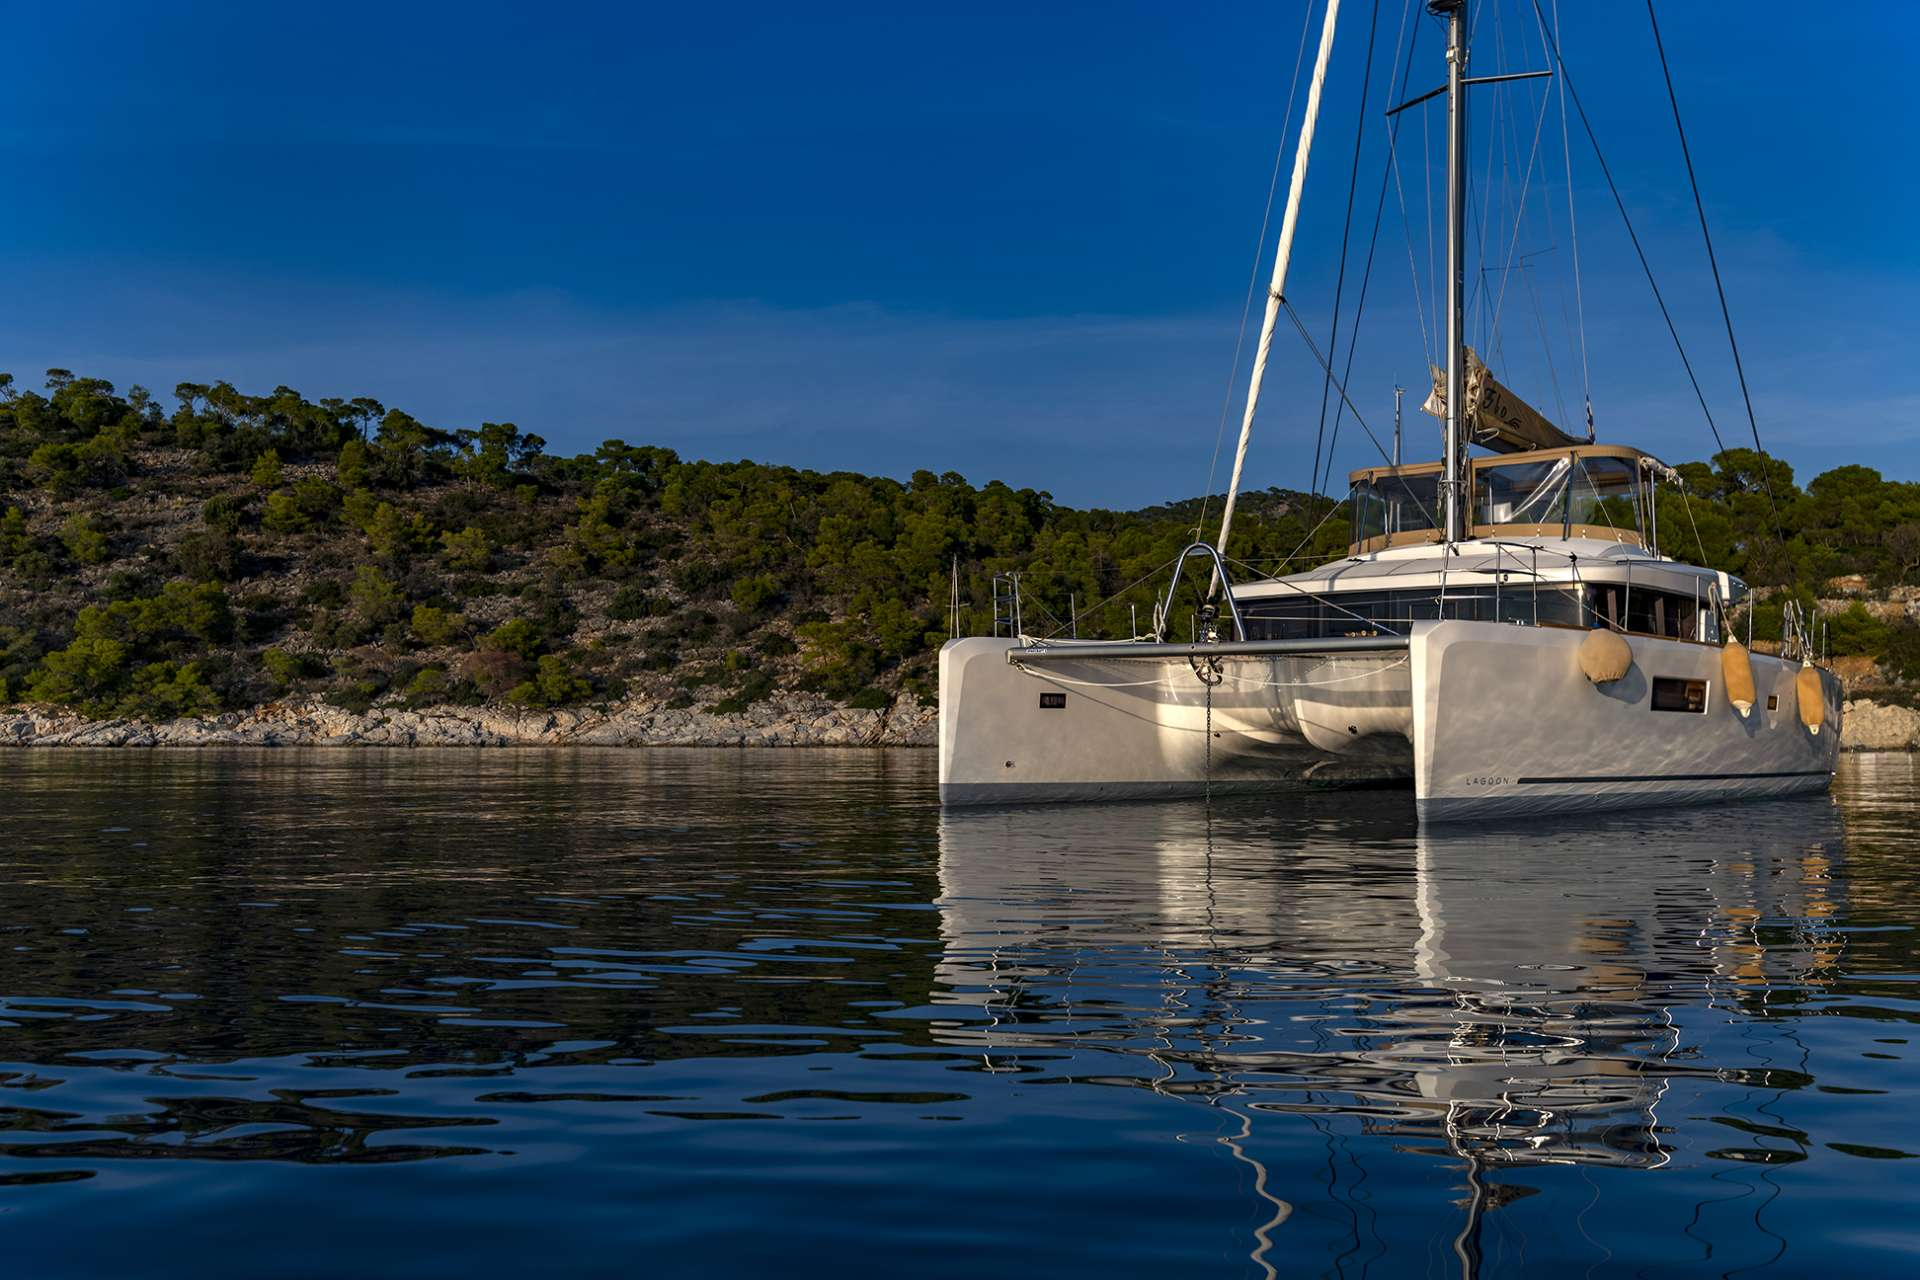 Sailing yacht catamaran